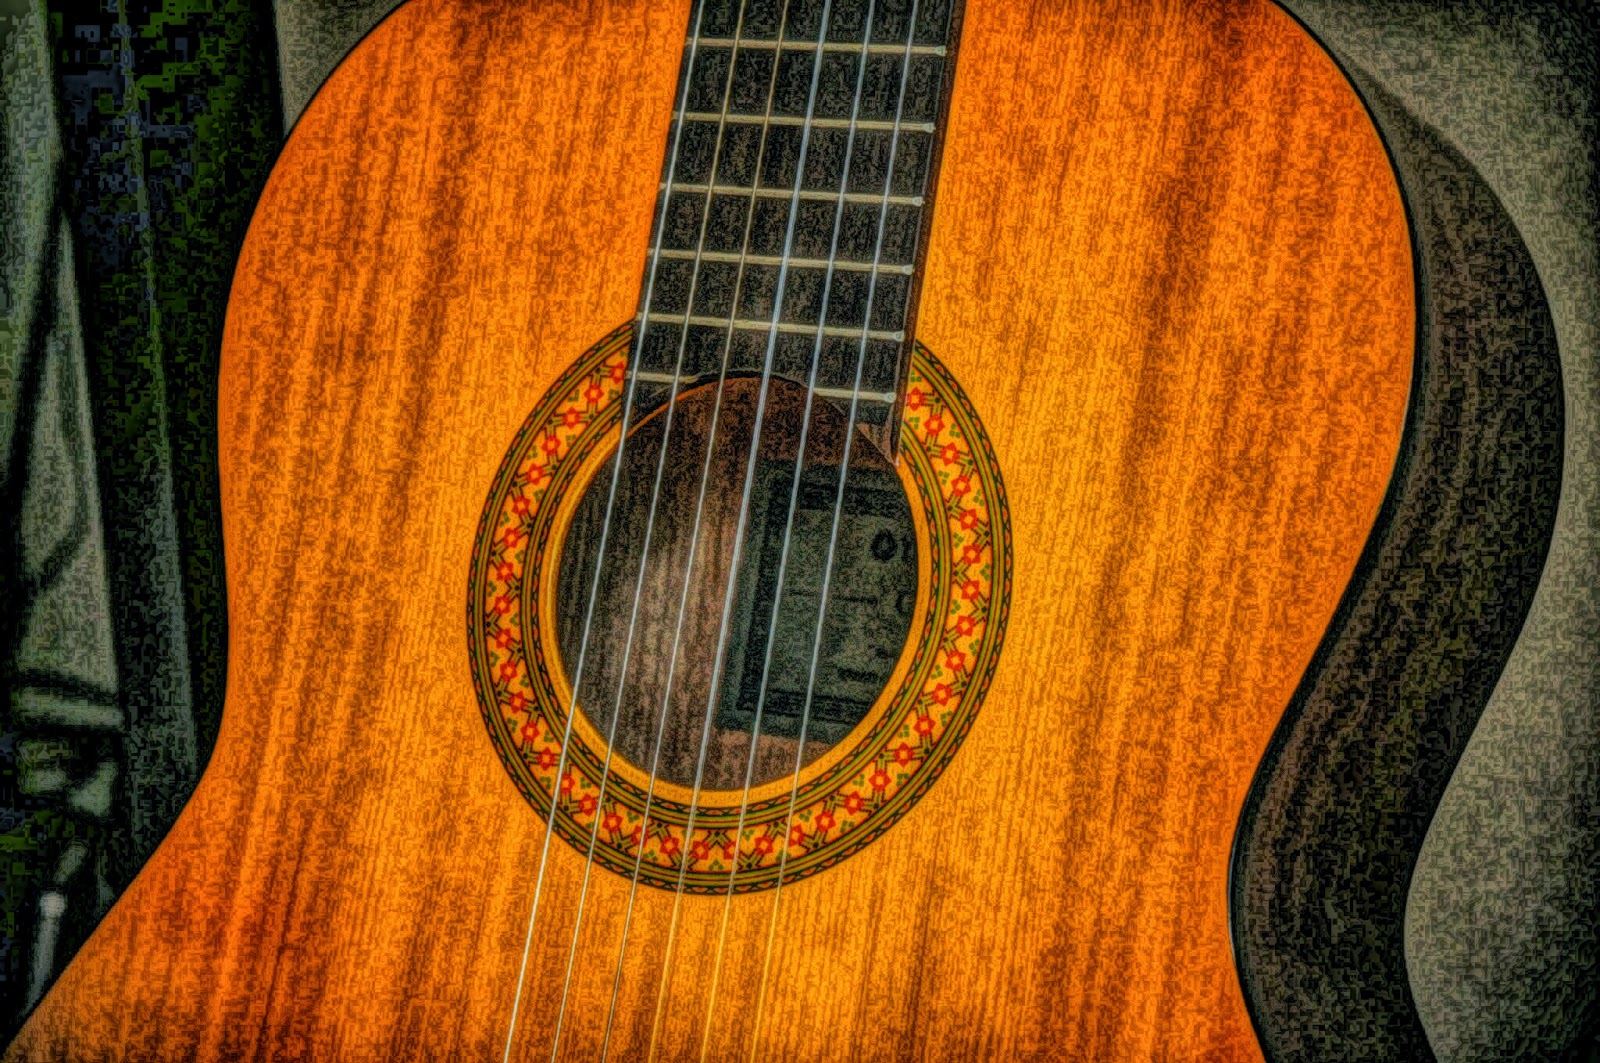 This guitar picture can be used for commercial purposes.